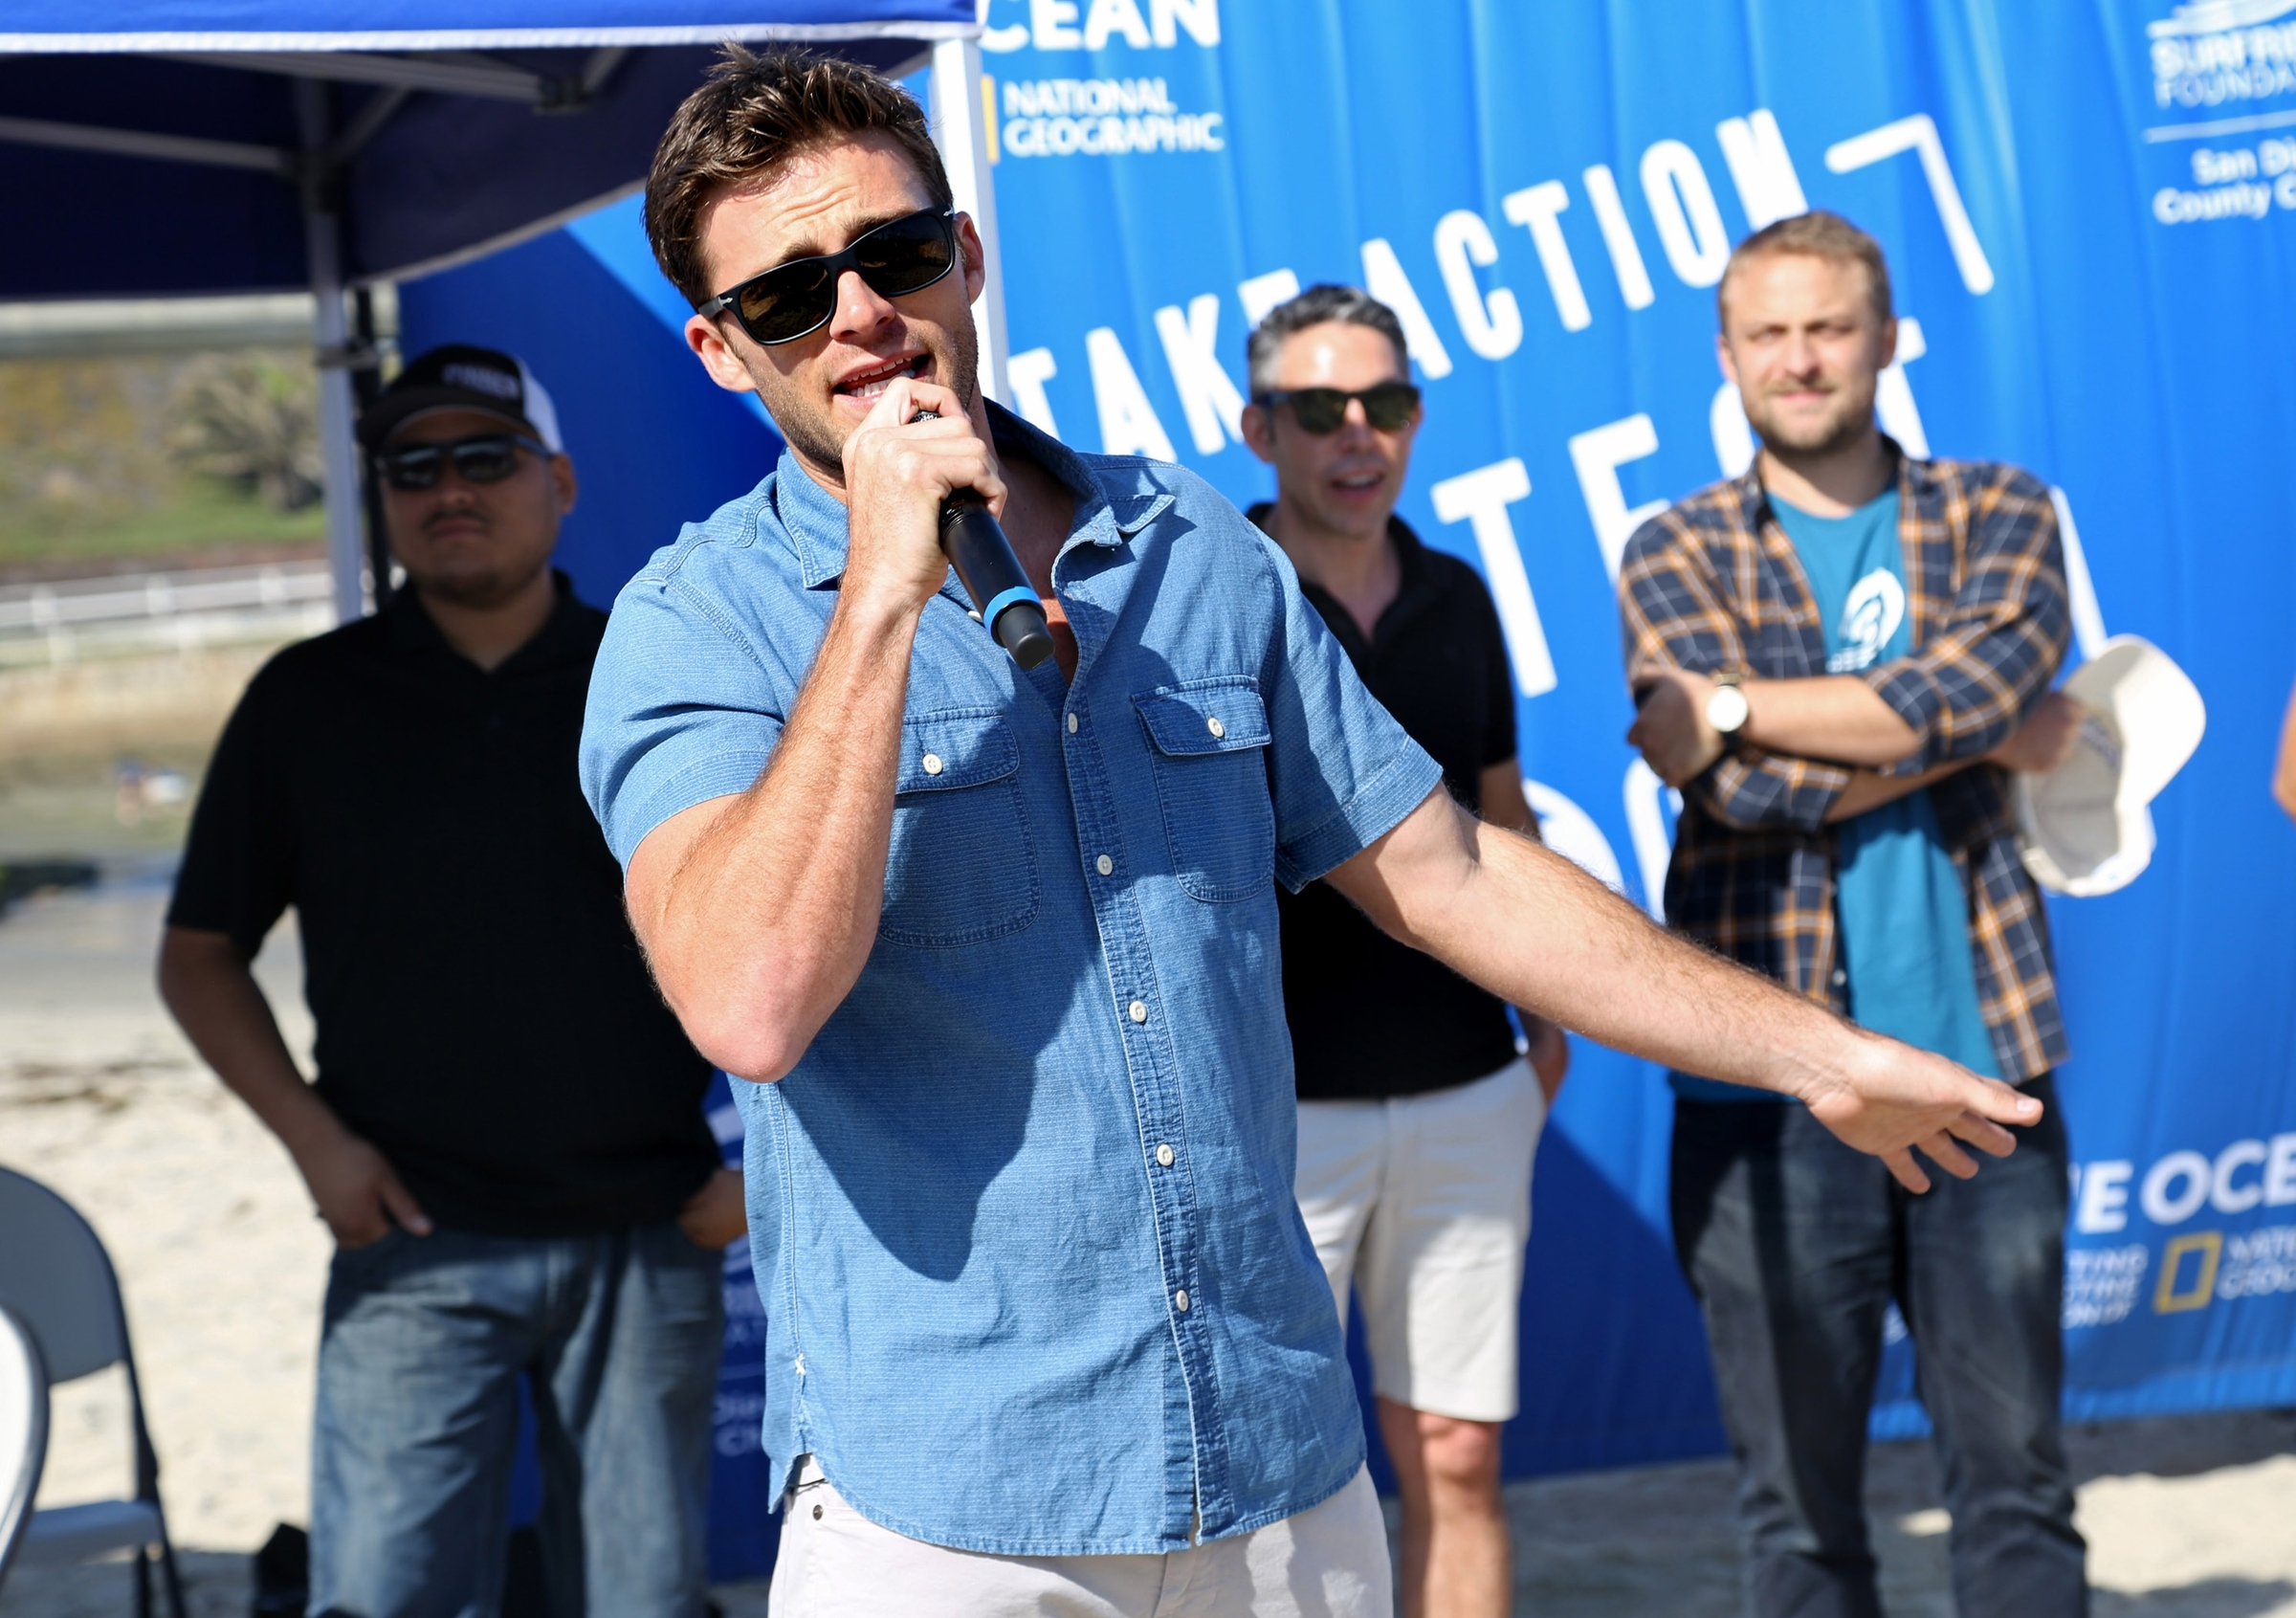 New York City -  July 10, 2016:  Looking good while doing good, Scott Eastwood, the face of Davidoff Cool Water, supports the brand's #LoveTheOcean campaign at a beach cleaunp in Ocean Beach.  -  PICTURED: Scott Eastwood   - PHOTO BY: Sara Jaye Weiss/StartraksPhoto.com